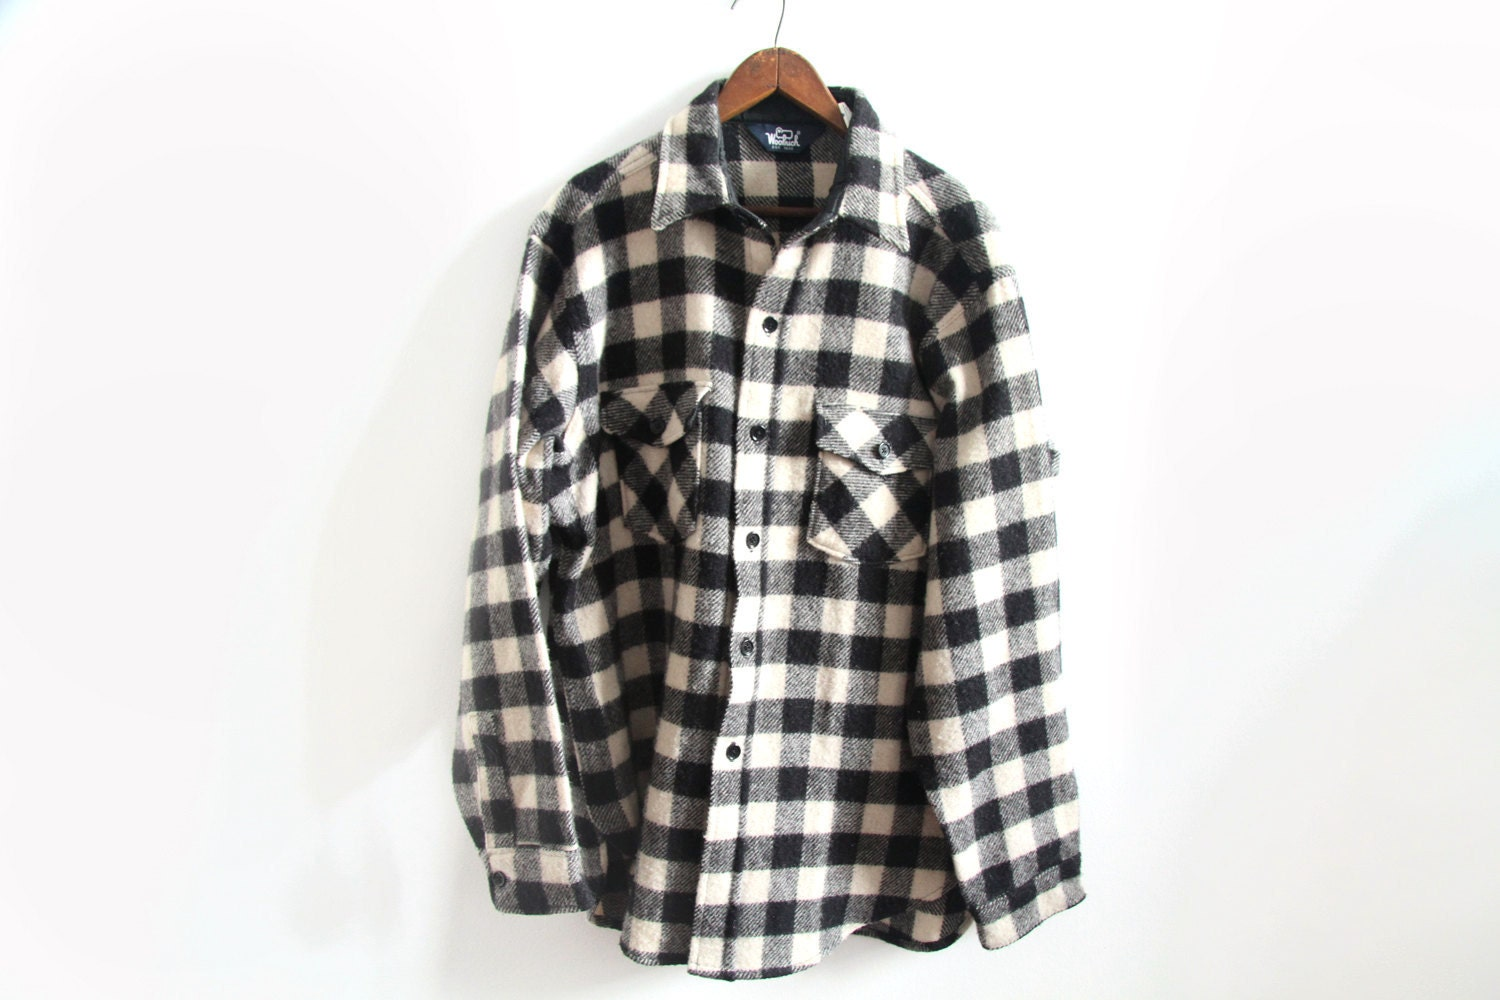 Vintage Plaid Woolrich Shirt Jacket Mens Black and White